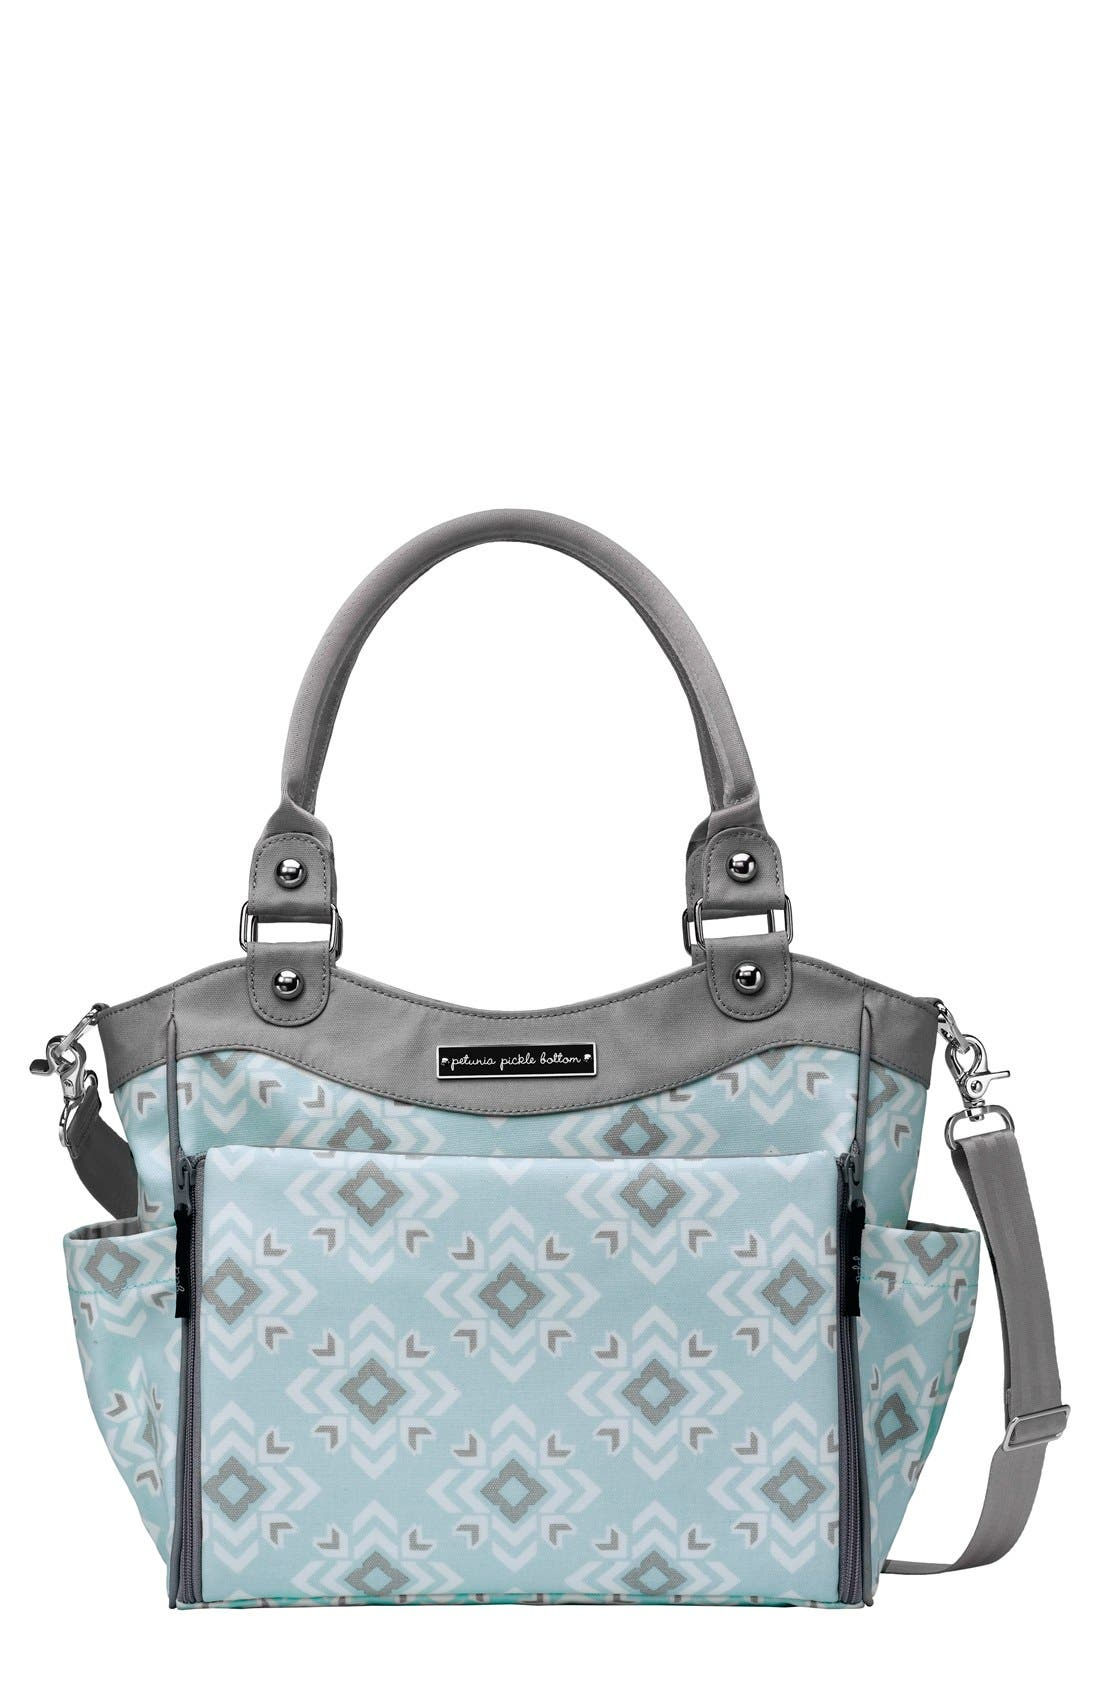 PETUNIA PICKLE BOTTOM 'City Carryall' Diaper Bag